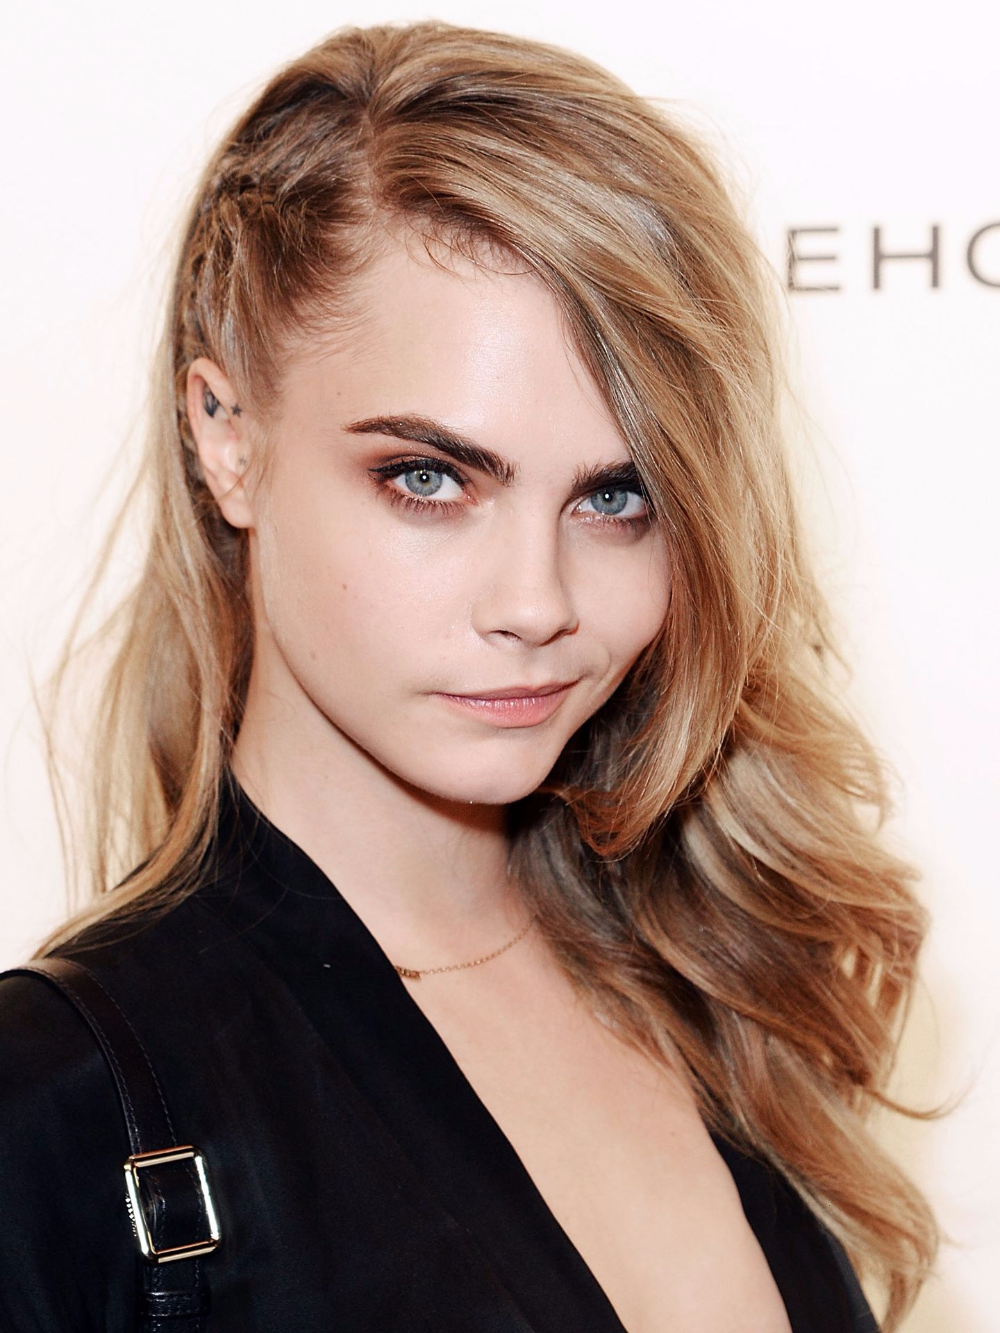 11 Side Swept Hairstyles Celebrity Side Hairstyle Inspiration In 2020 Side Swept Hairstyles Side Hairstyles Long Hair Styles